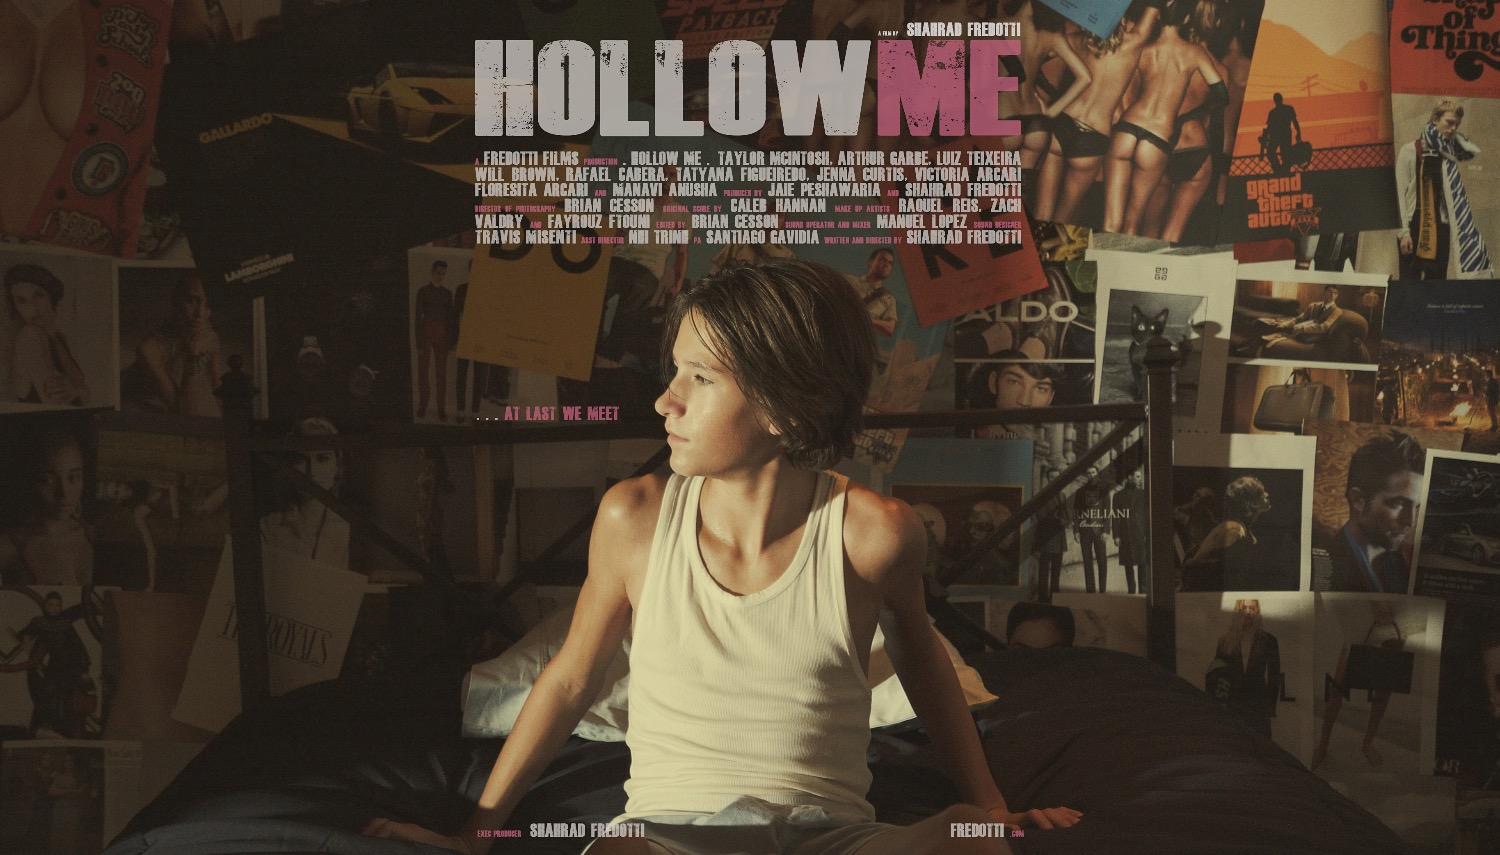 SHAHRAD'S FIRST FILM - HOLLOW ME